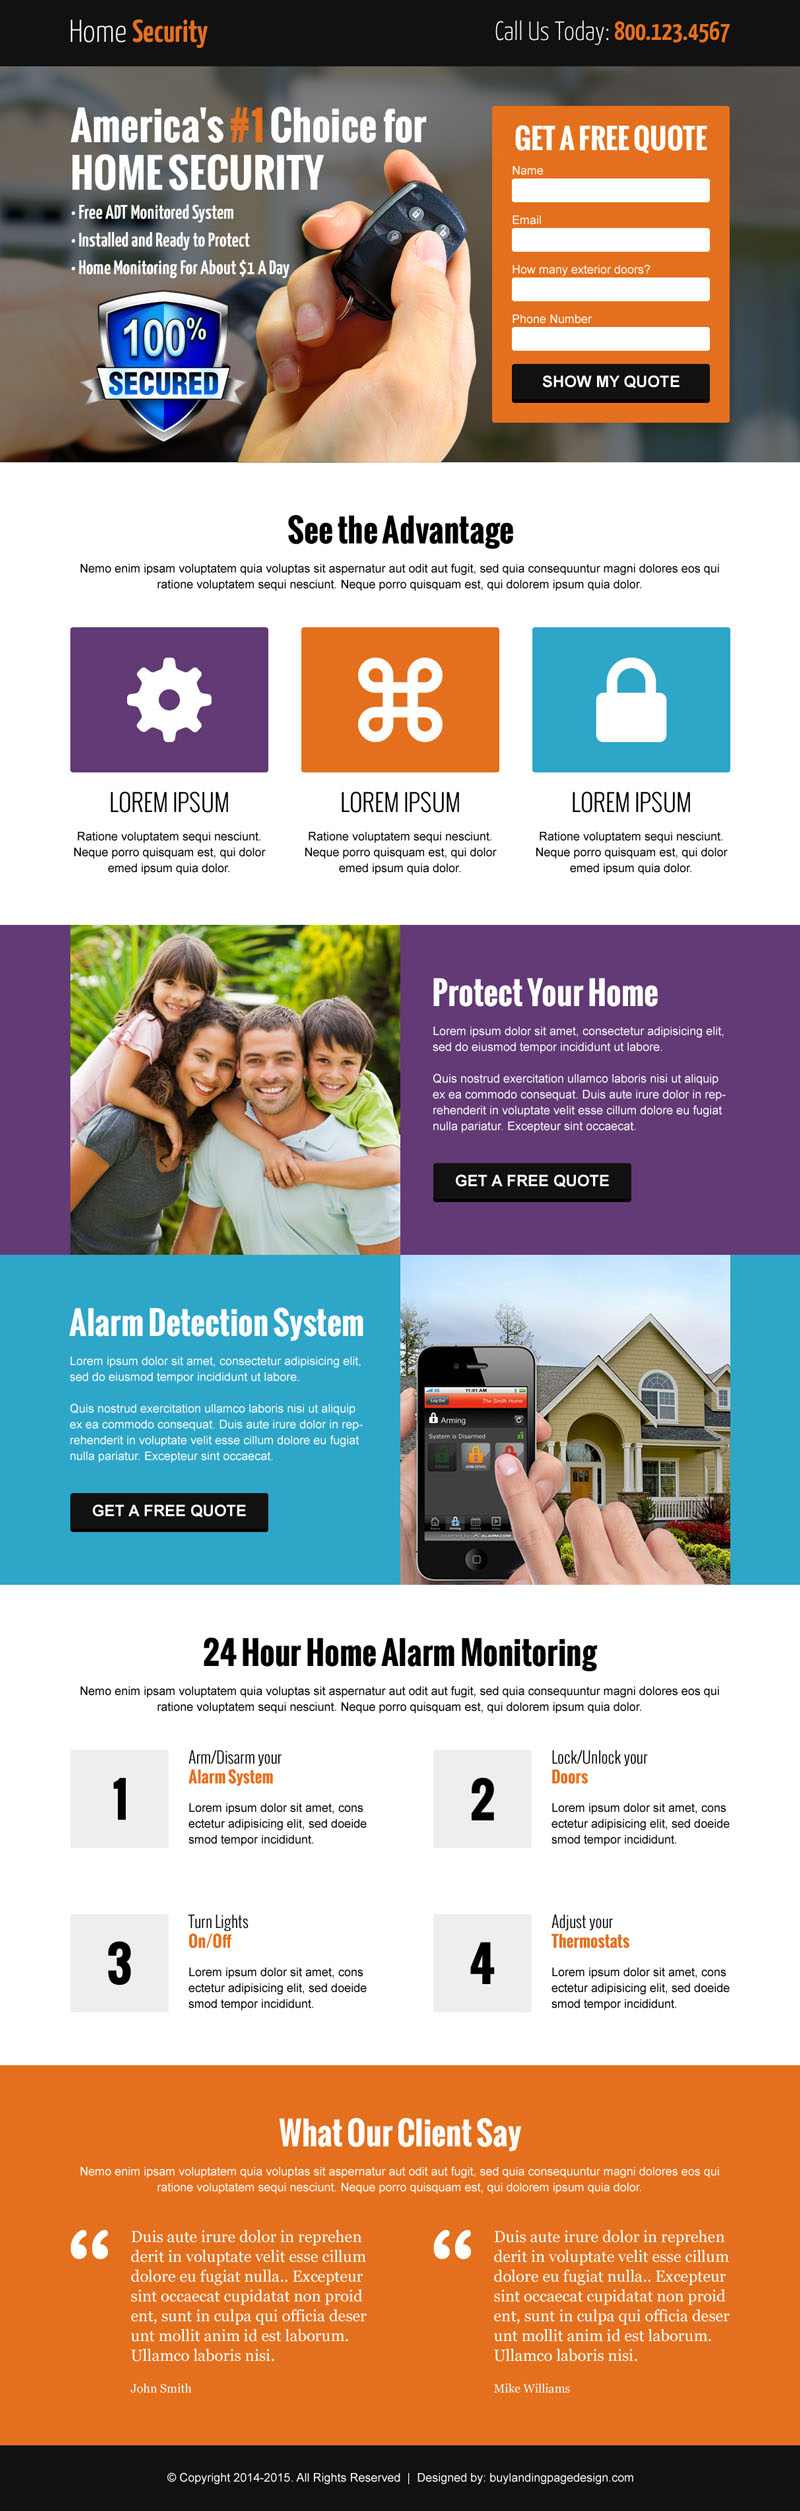 free quote service lead capture landing page design template 002